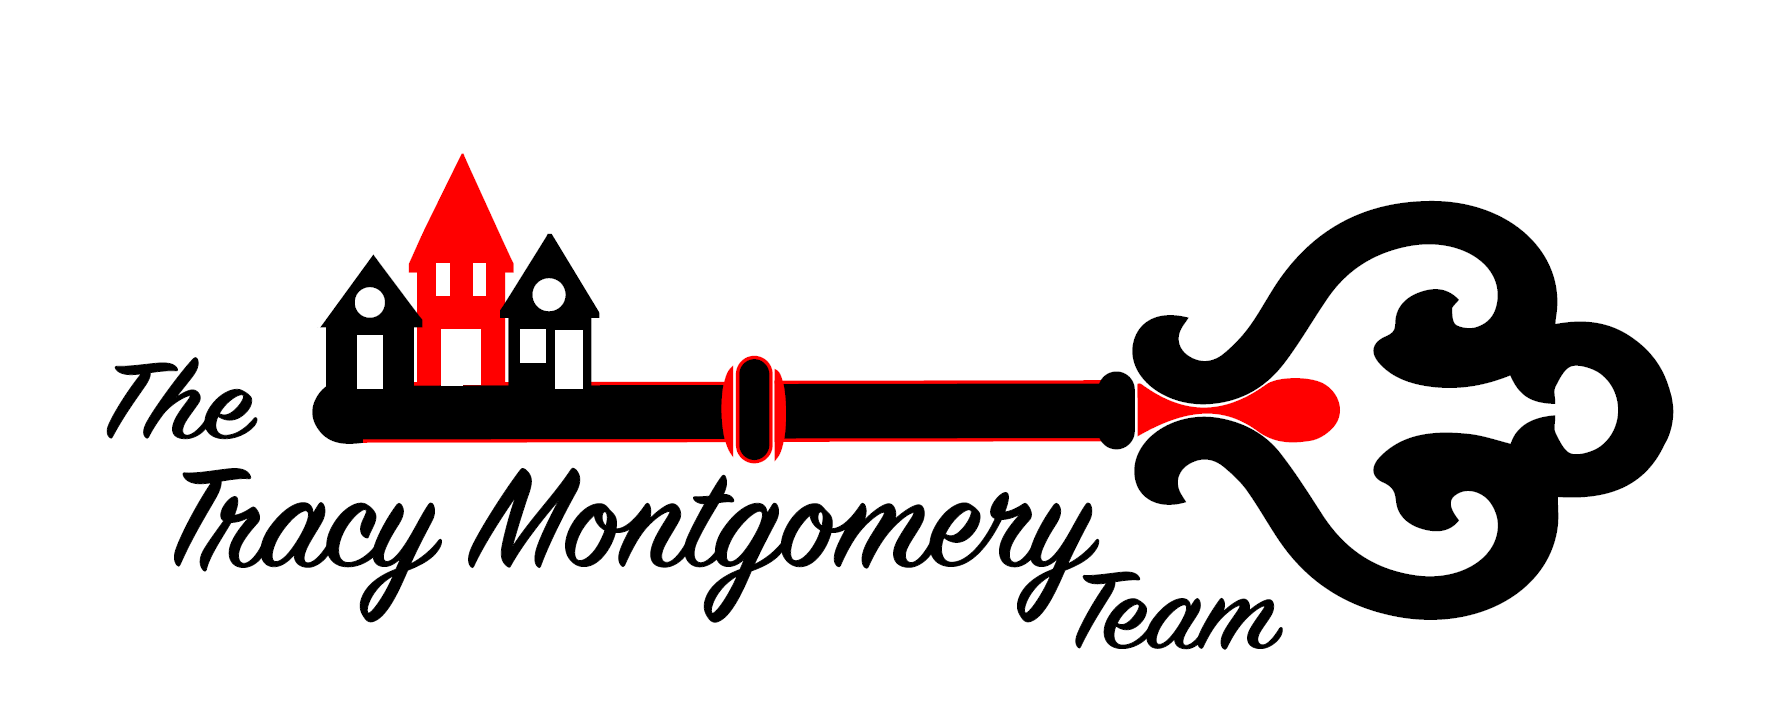 The Tracy Montgomery Team